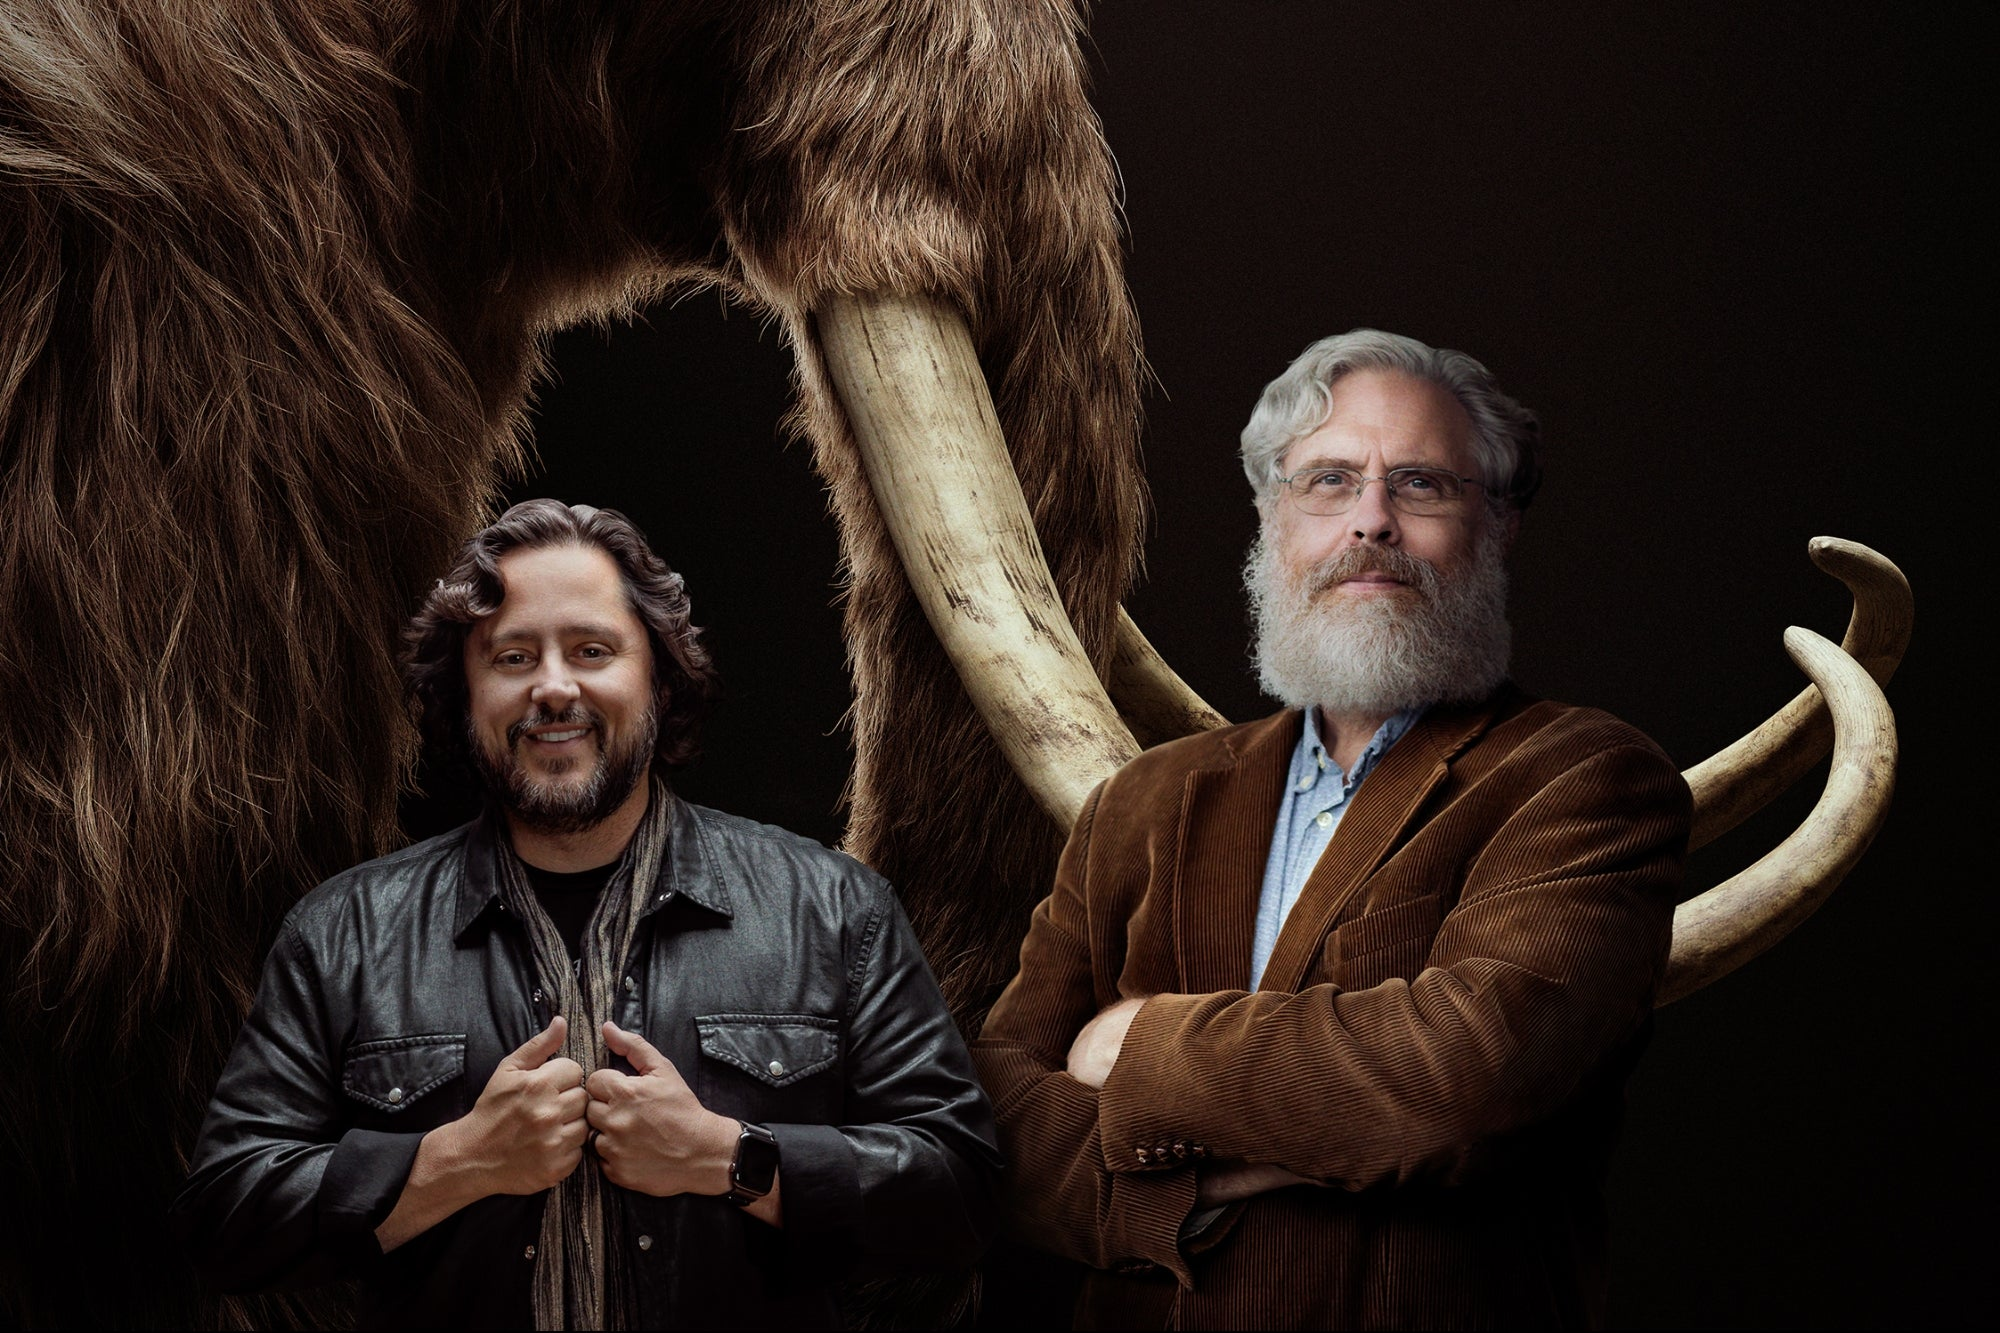 This New Company Says It's Bringing Back the Woolly Mammoth, As A Way to Fight Climate Change